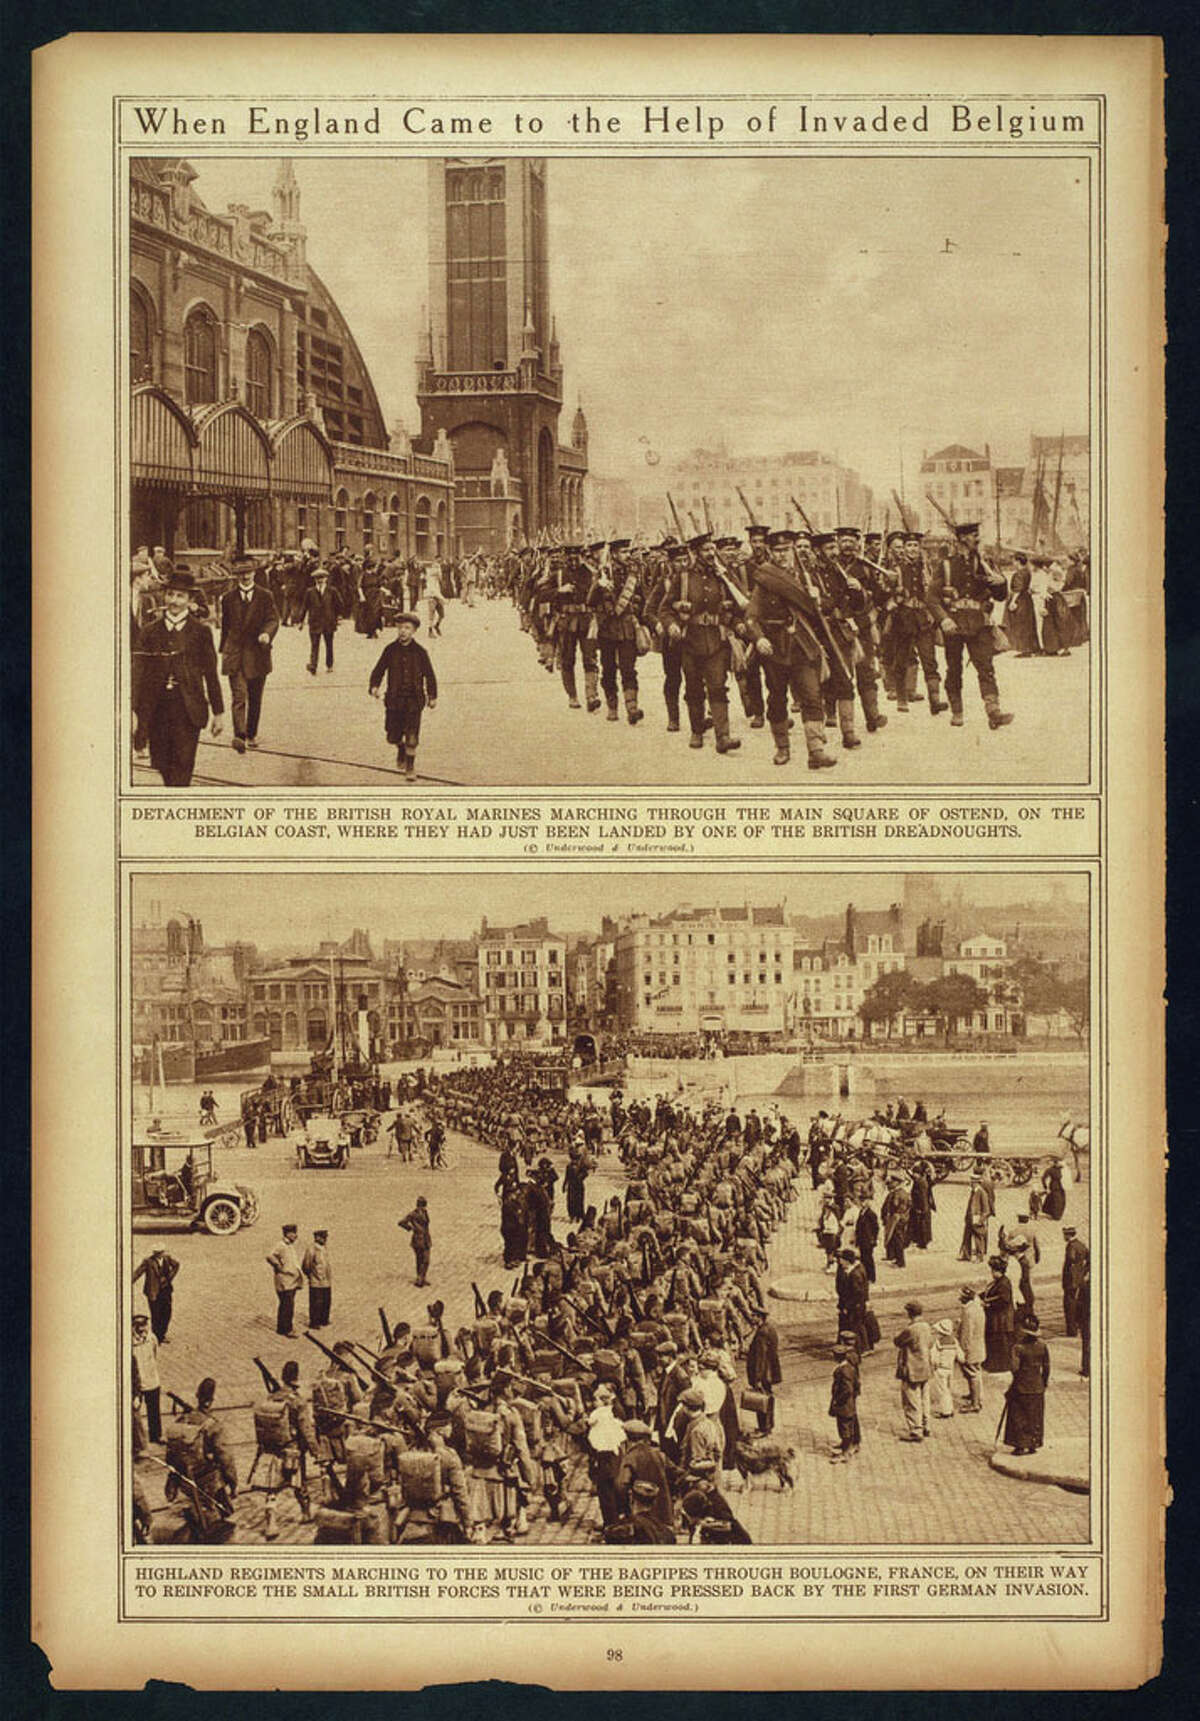 """""""When England came to the help of invaded Belgium."""" Library of Congress notes: """"Selected from """"The War of the Nations: Portfolio in Rotogravure Etchings,"""" published by the New York Times shortly after the 1919 armistice."""""""